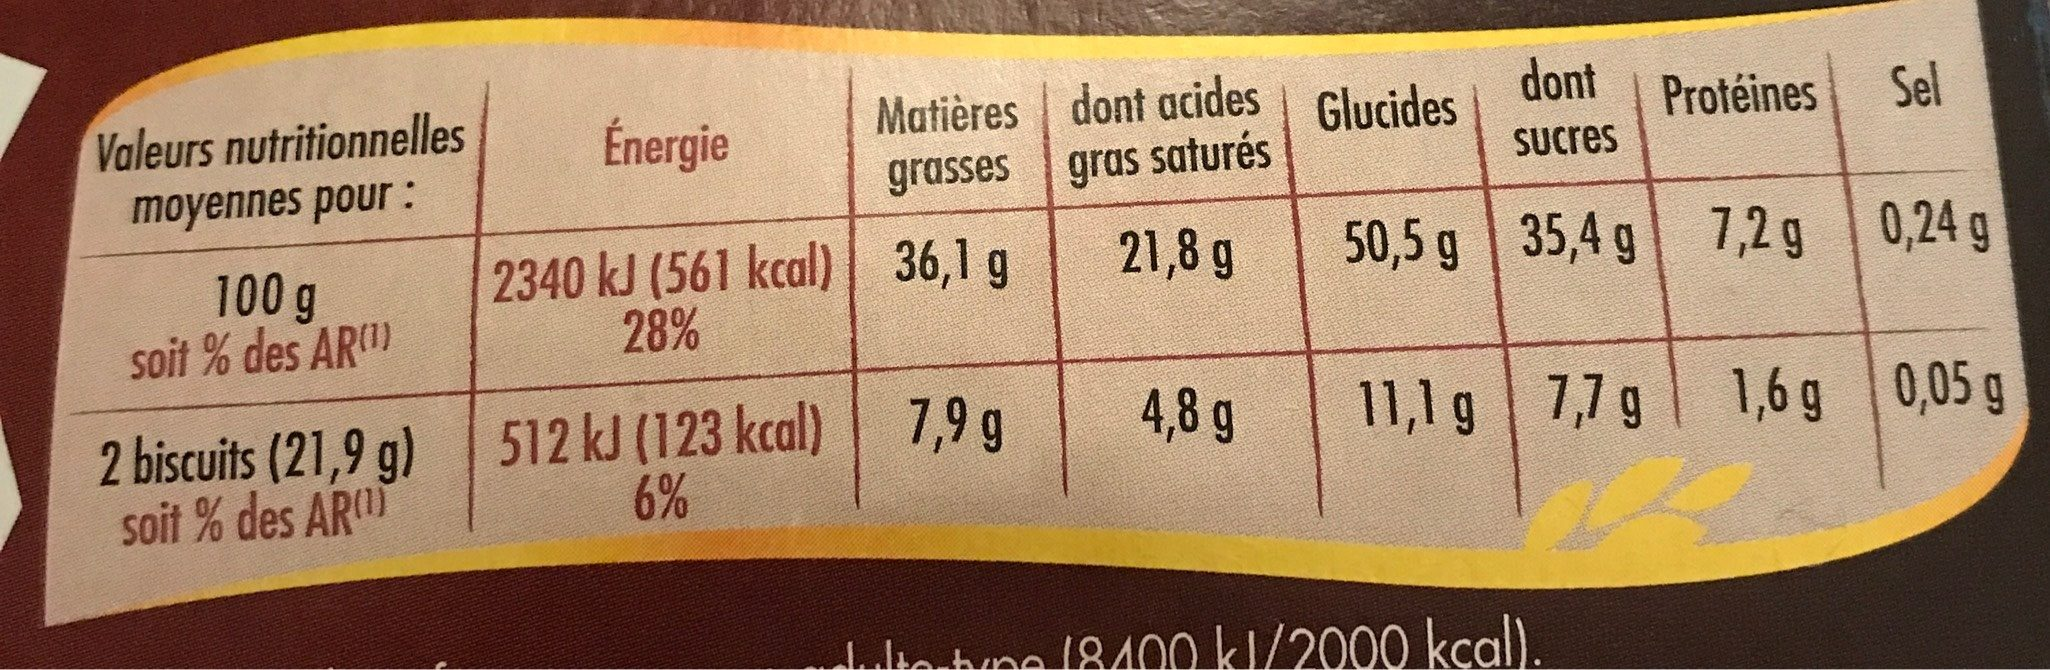 Crousti'Tab - Nutrition facts